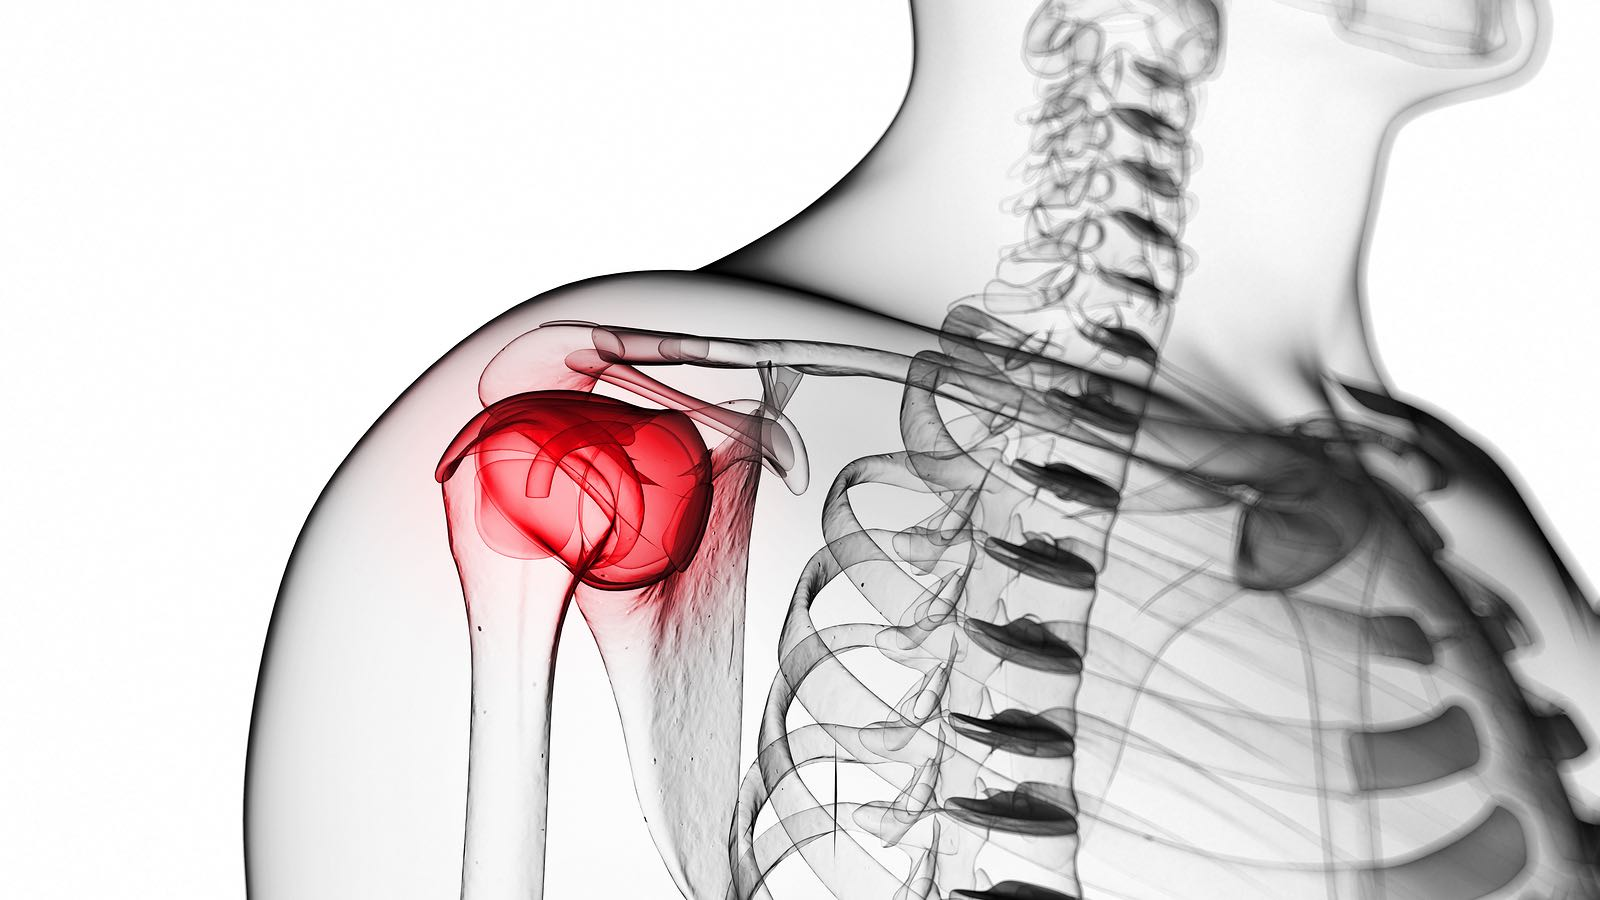 Clinical Presentations of Shoulder Pain - Explore how pain presents in the shoulder